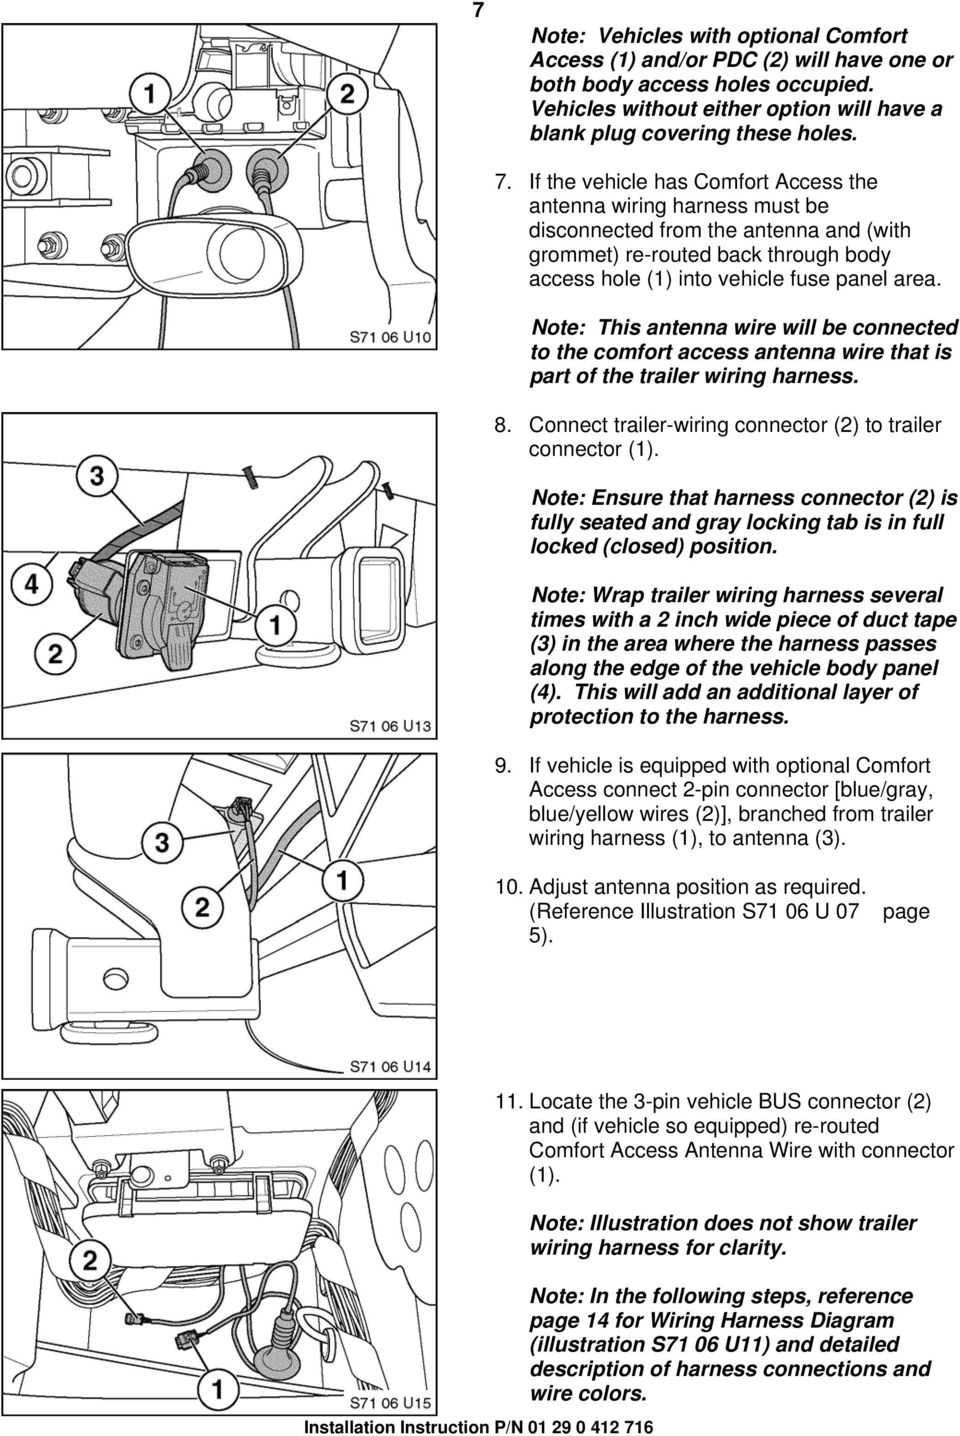 Installation Instructions Pdf Bmw X5 Trailer Wiring Harness Note This Antenna Wire Will Be Connected To The Comfort Access That Is